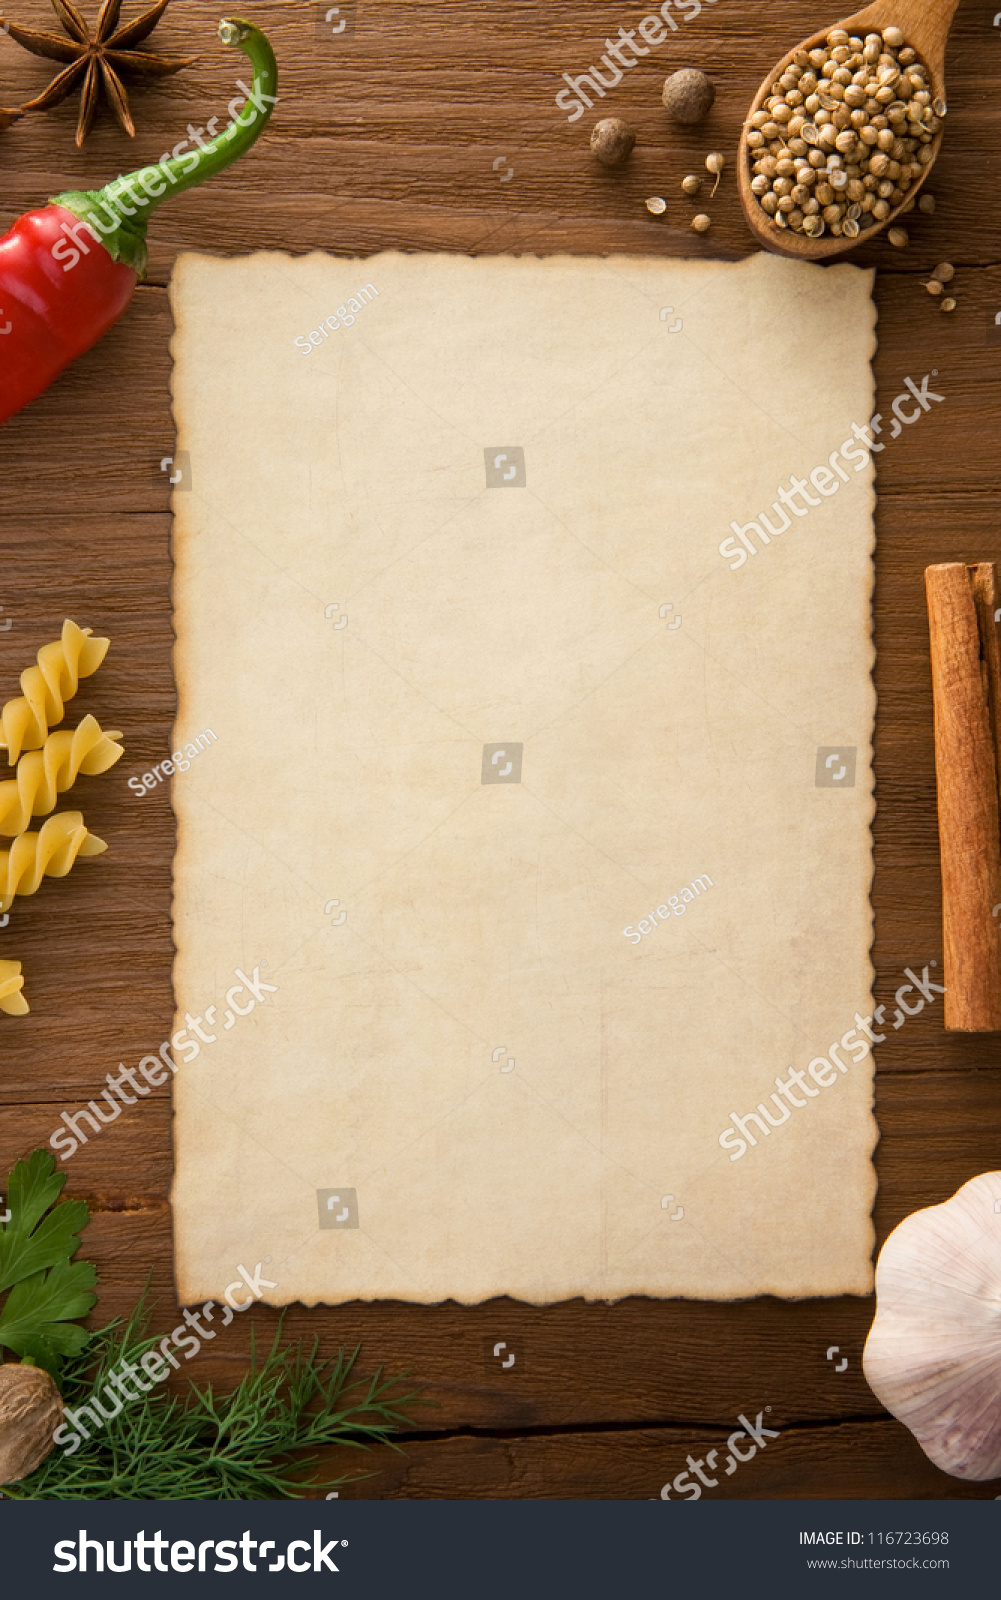 background cooking recipes spices on wooden stock photo